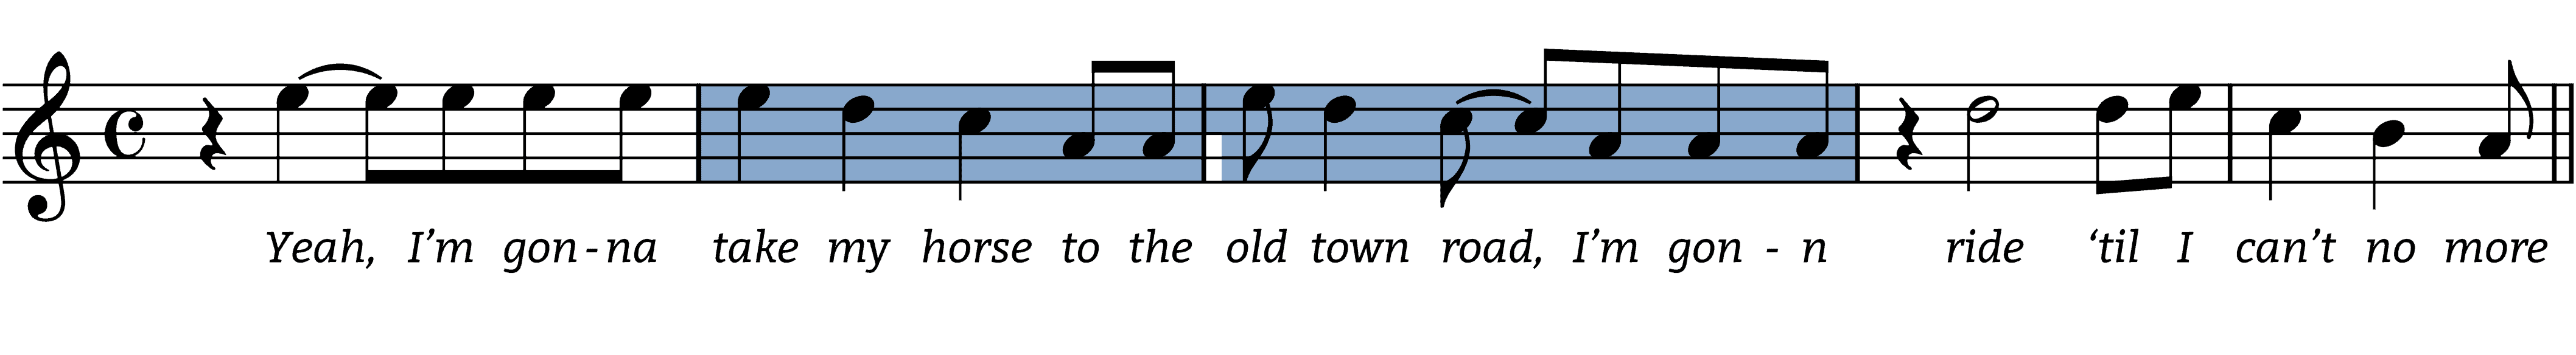 old-town-road melodic figures